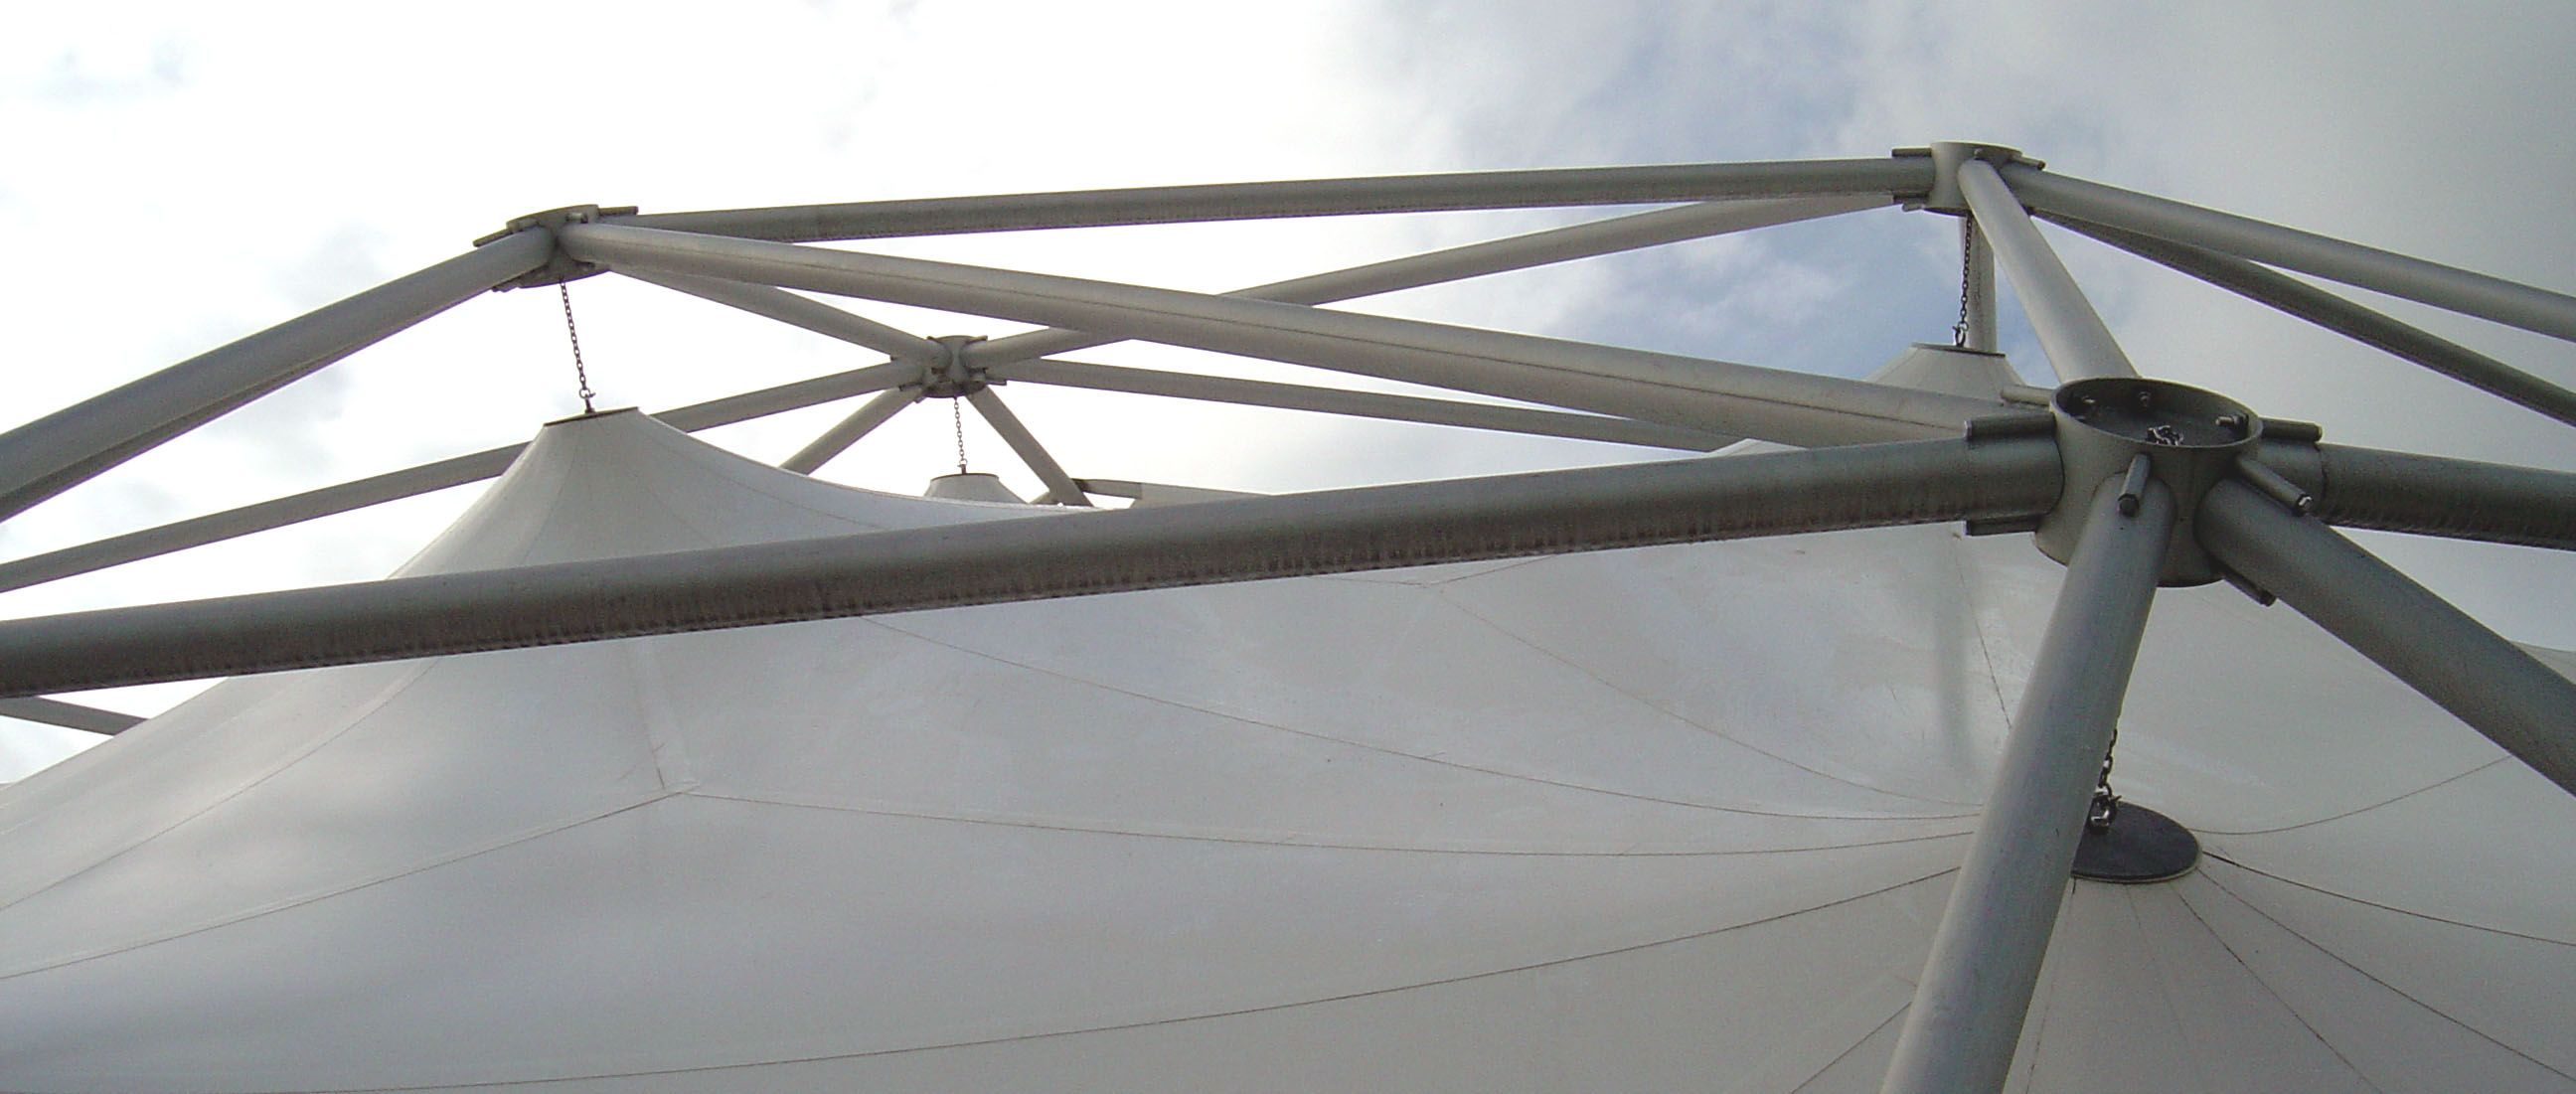 Construction details of a permanently installed tent type